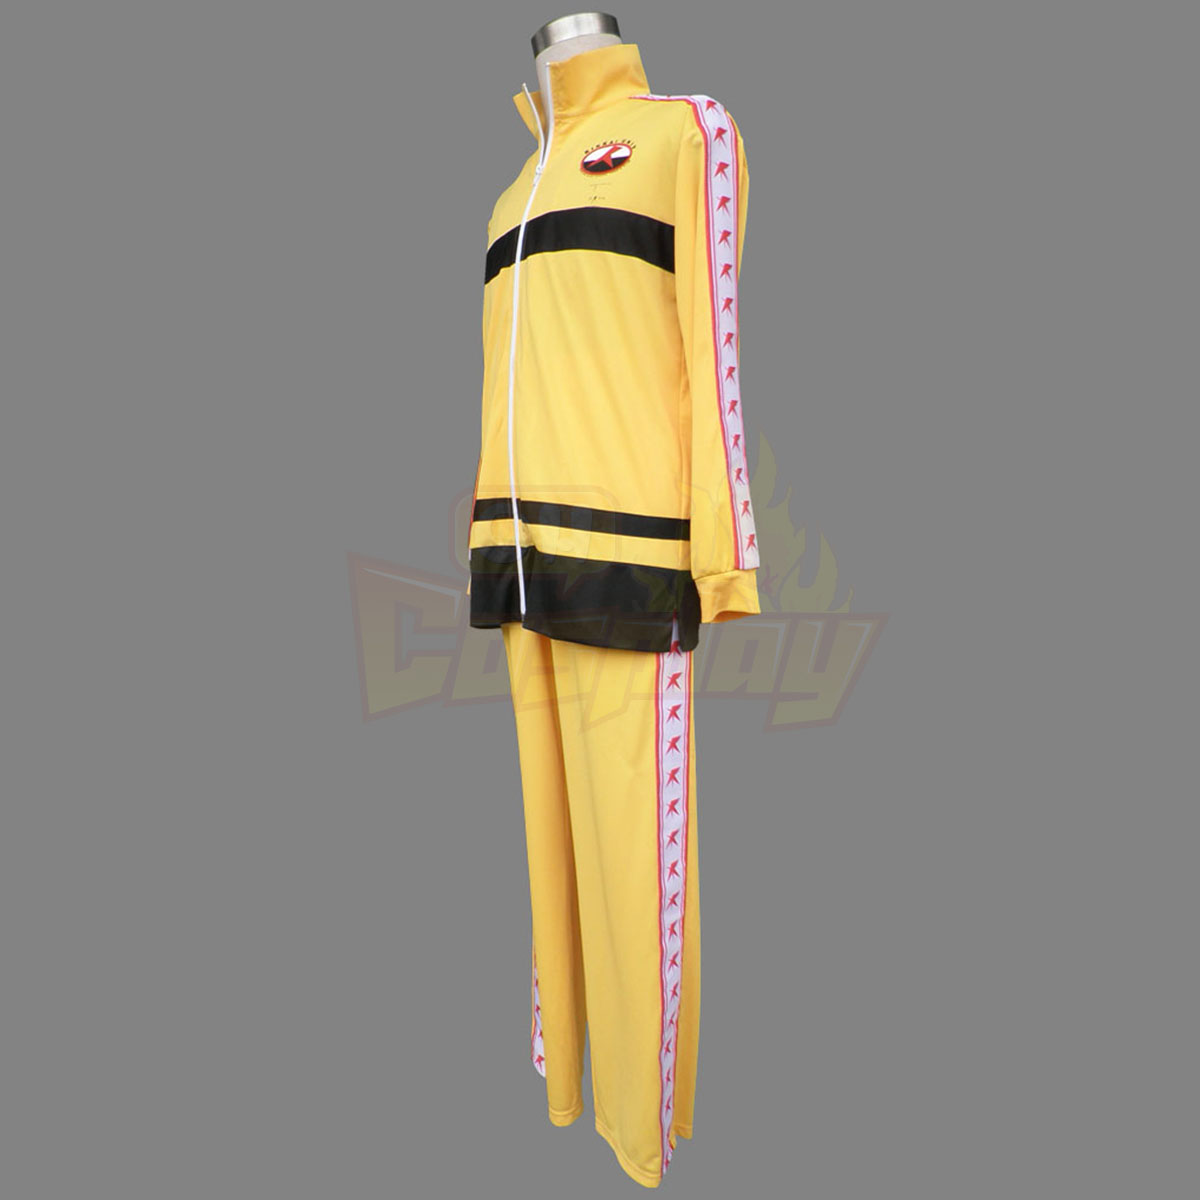 Fantasias The Prince of Tennis Rikkaidai Junior Colegial Uniforme de Inverno Vestidos